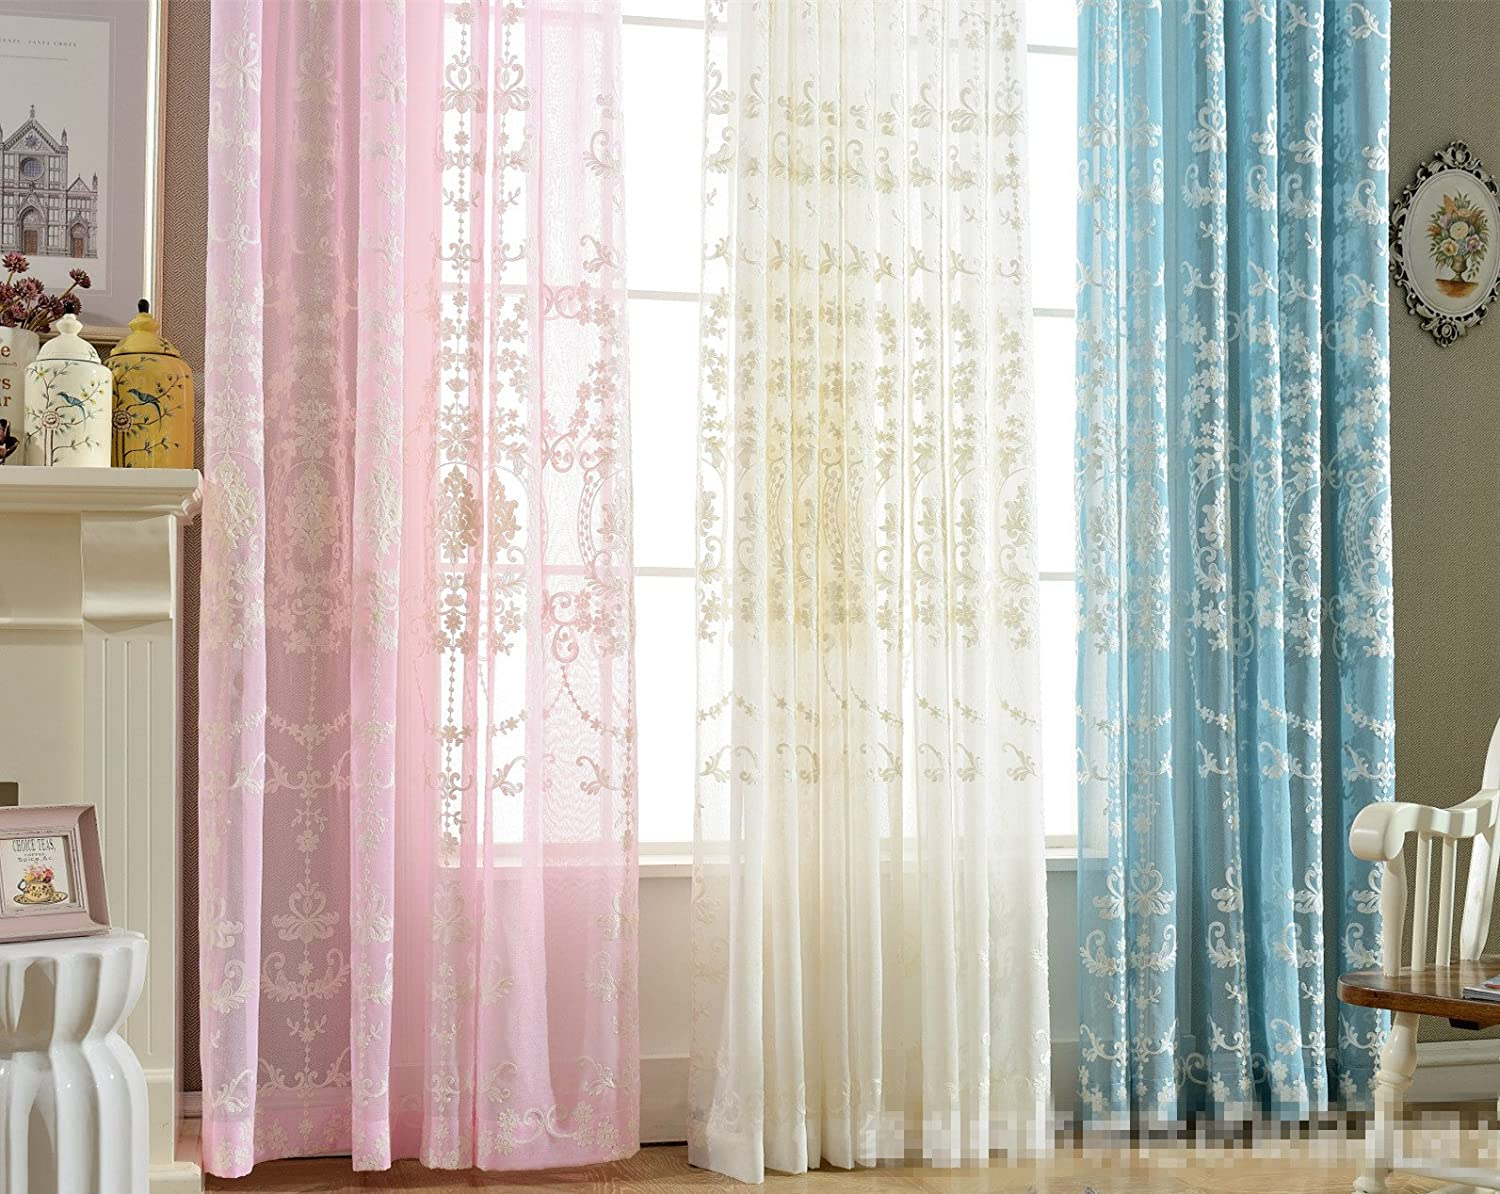 AliFish 1 Panel Rod Pocket Pastoral Style Embroidered Floral Sheer Curtains Half Shading Decorative Window Treatment Voile Drapes for Living Room Sliding Glass Door